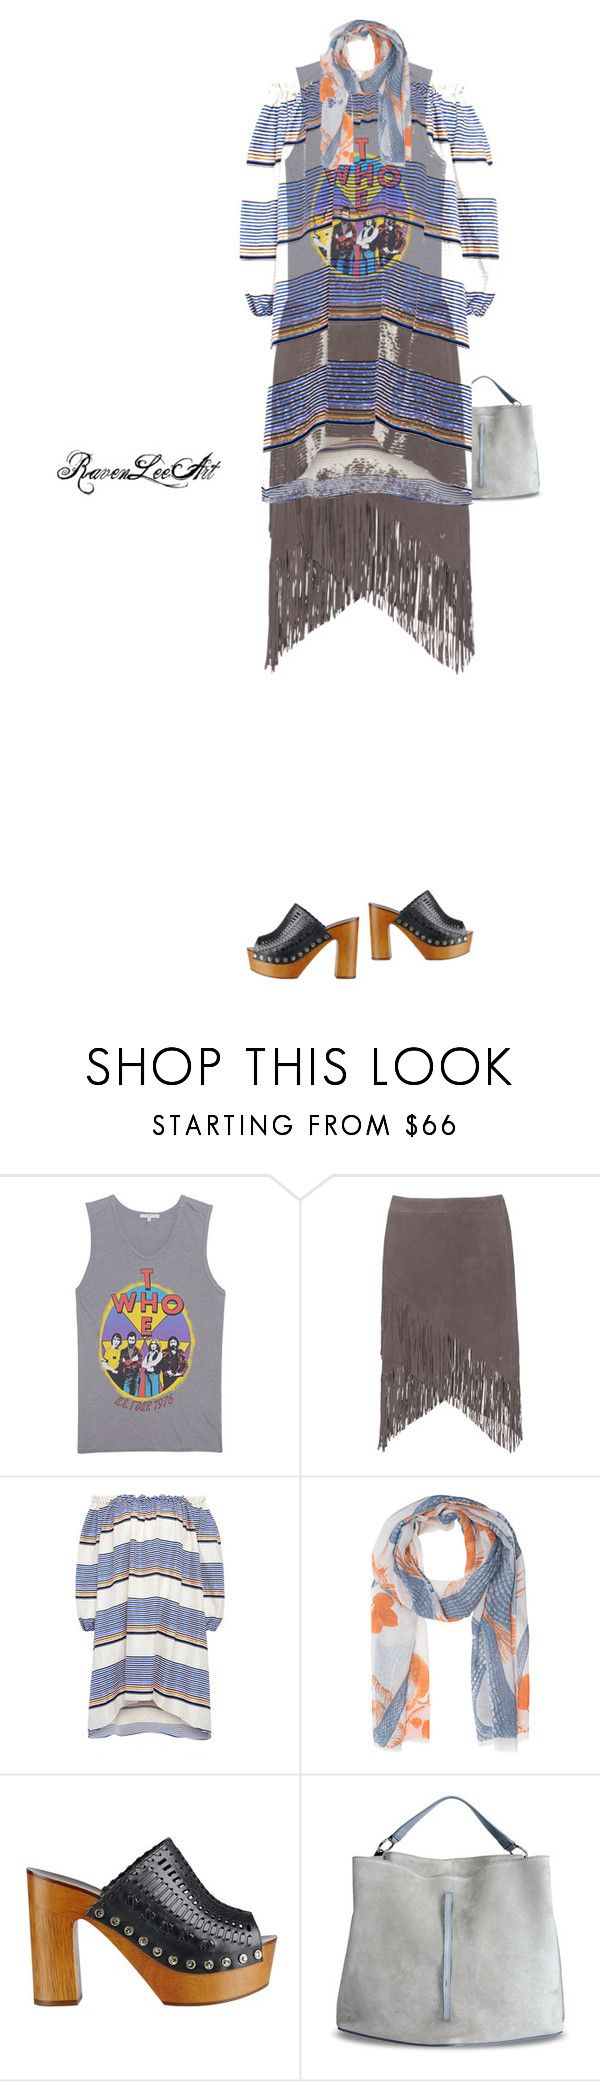 """""""The Who"""" by ravenleeart ❤ liked on Polyvore featuring Junk Food Clothing, True Religion, Tanya Taylor, Friendly Hunting, Sigerson Morrison and Maison Margiela"""